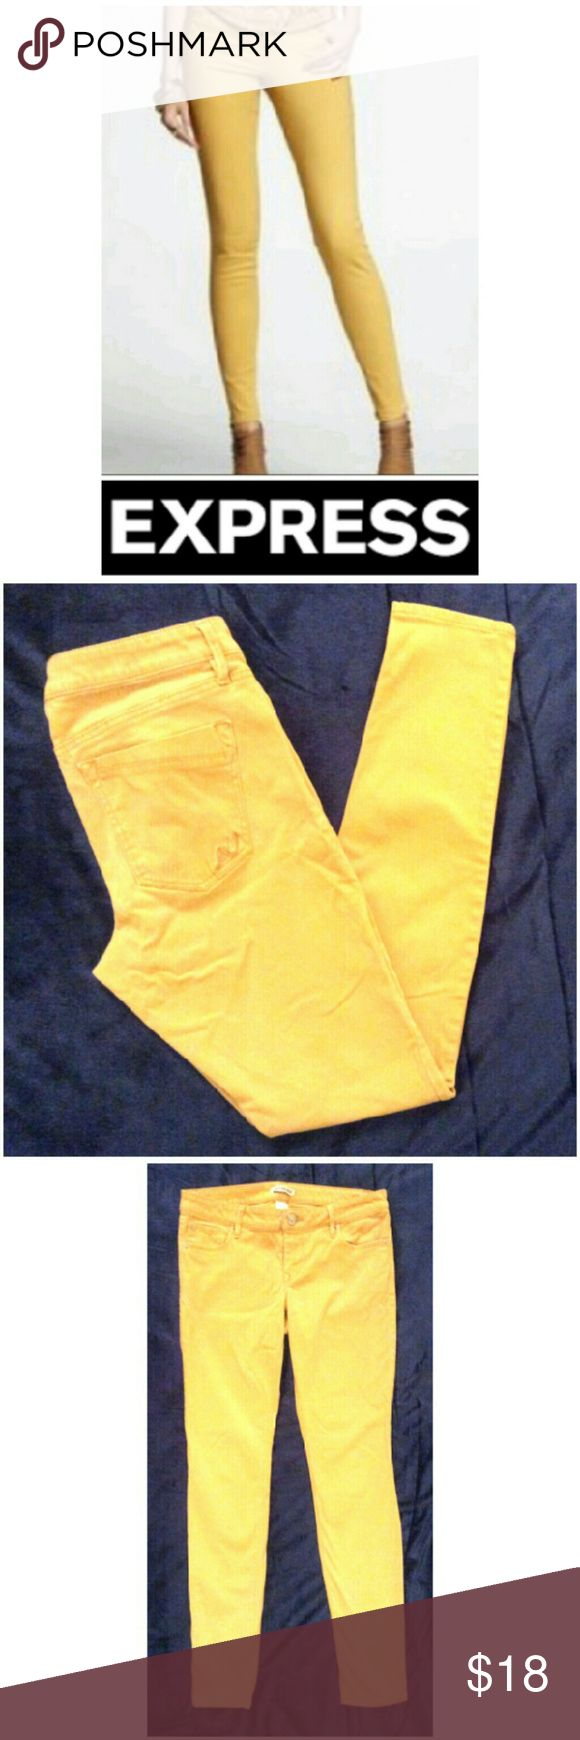 """NEW Skinny Express Mustard Yellow Jeans These gorgeous Express skinny pants are perfect for any occasion! Light mustard yellow cotton material with 3% spandex for stretch fit. Traditional 5 pocket style, skinny leg, jeggings comfort fit. Size 6,  29.5"""" inseam. Dress up or down with boots and sweaters, heels and blazers...possibilities are endless! NWOT, UNUSED, NO DAMAGES. Grab yours for less and look chic in Express! Express Jeans Skinny"""